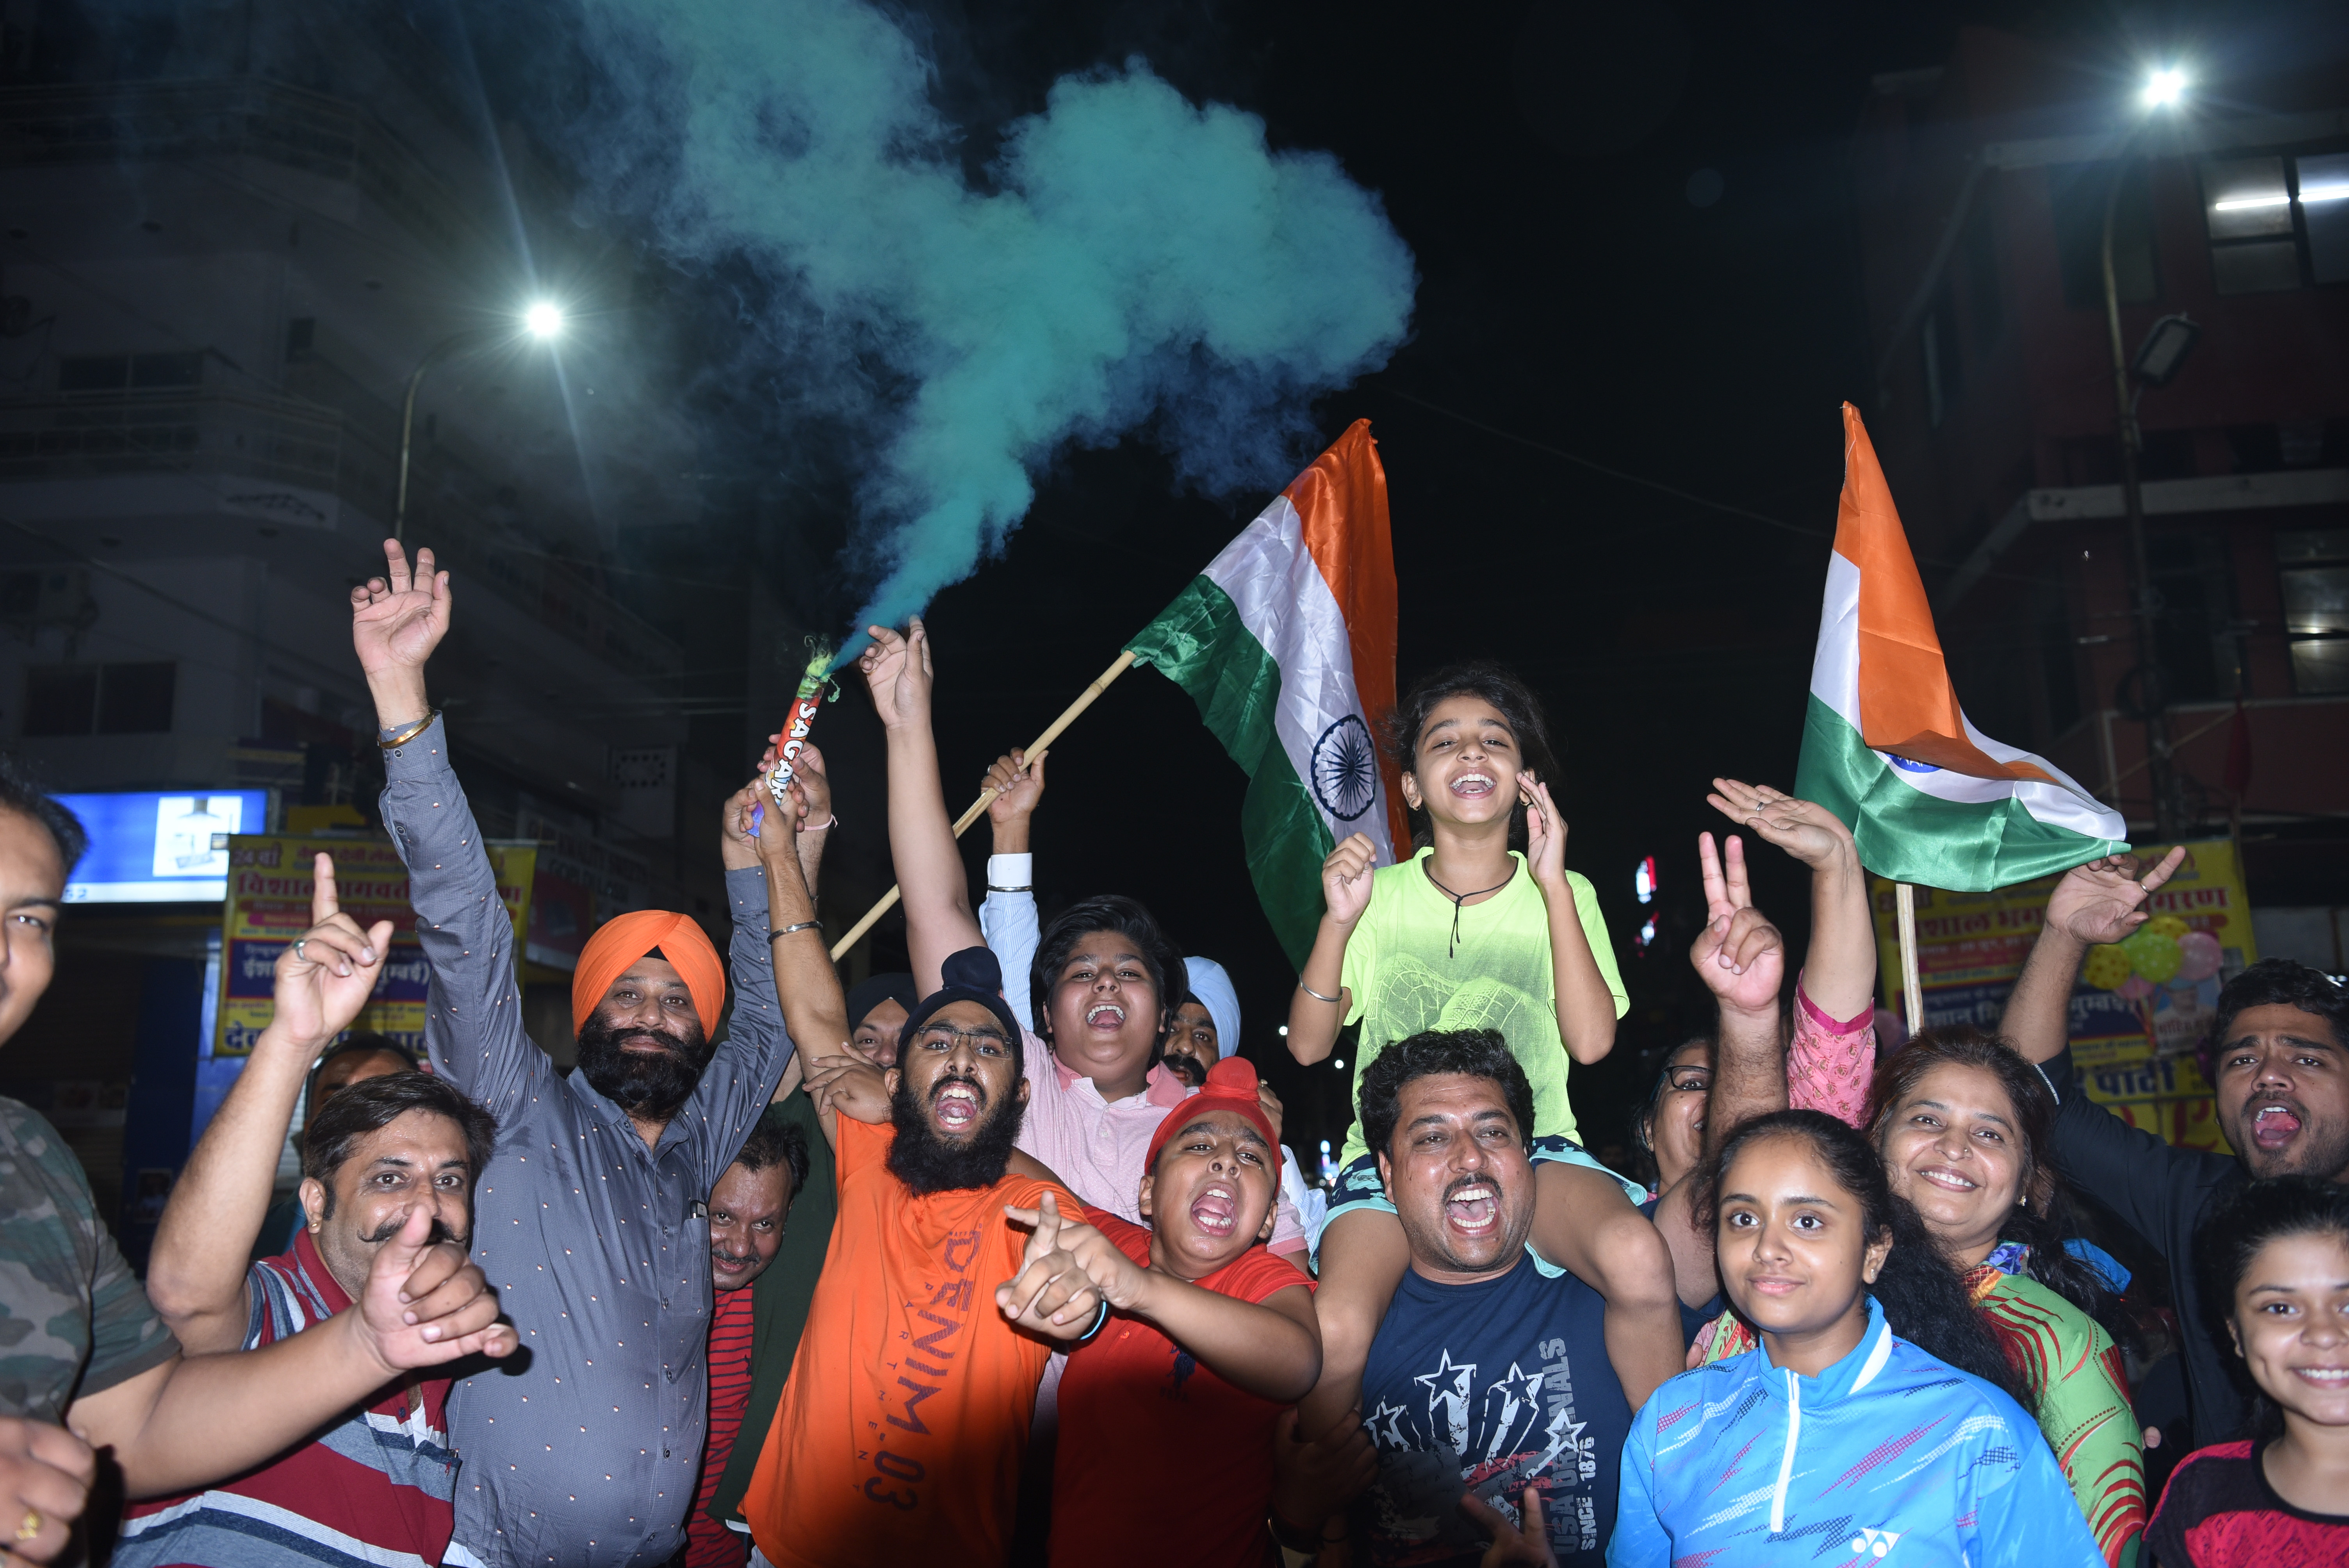 Cricket fans from Jaipur celebrate India's win against Pakistan during the World Cup cricket match at Manchester, England on 16 June 2019. Photos courtesy: The Times of India Group